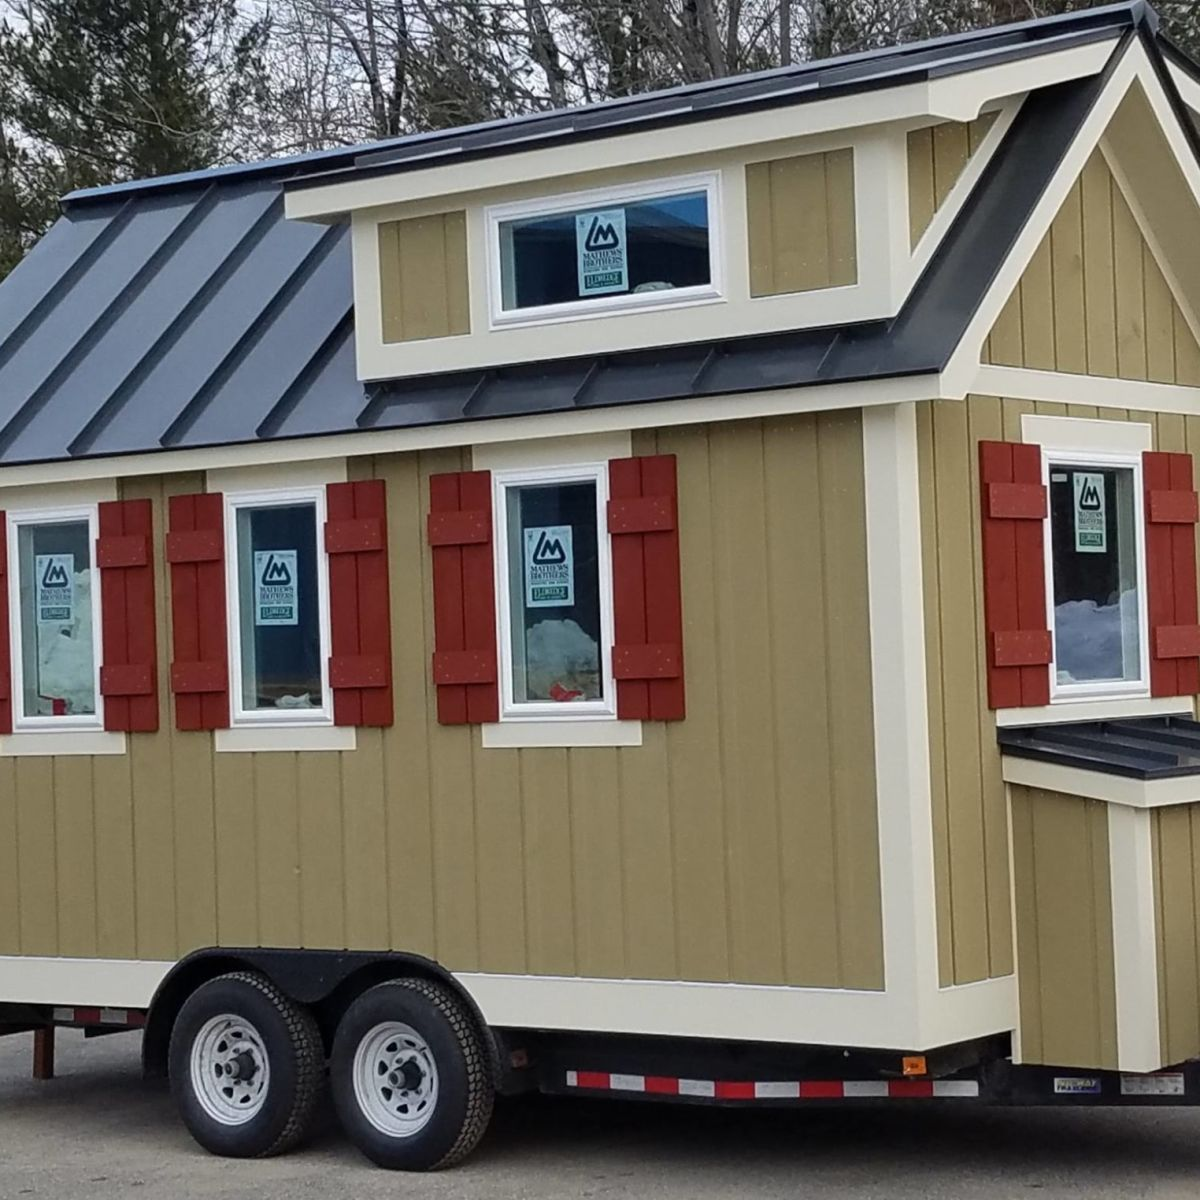 Farm House Reduced Price 32 000 Tiny House For Sale In